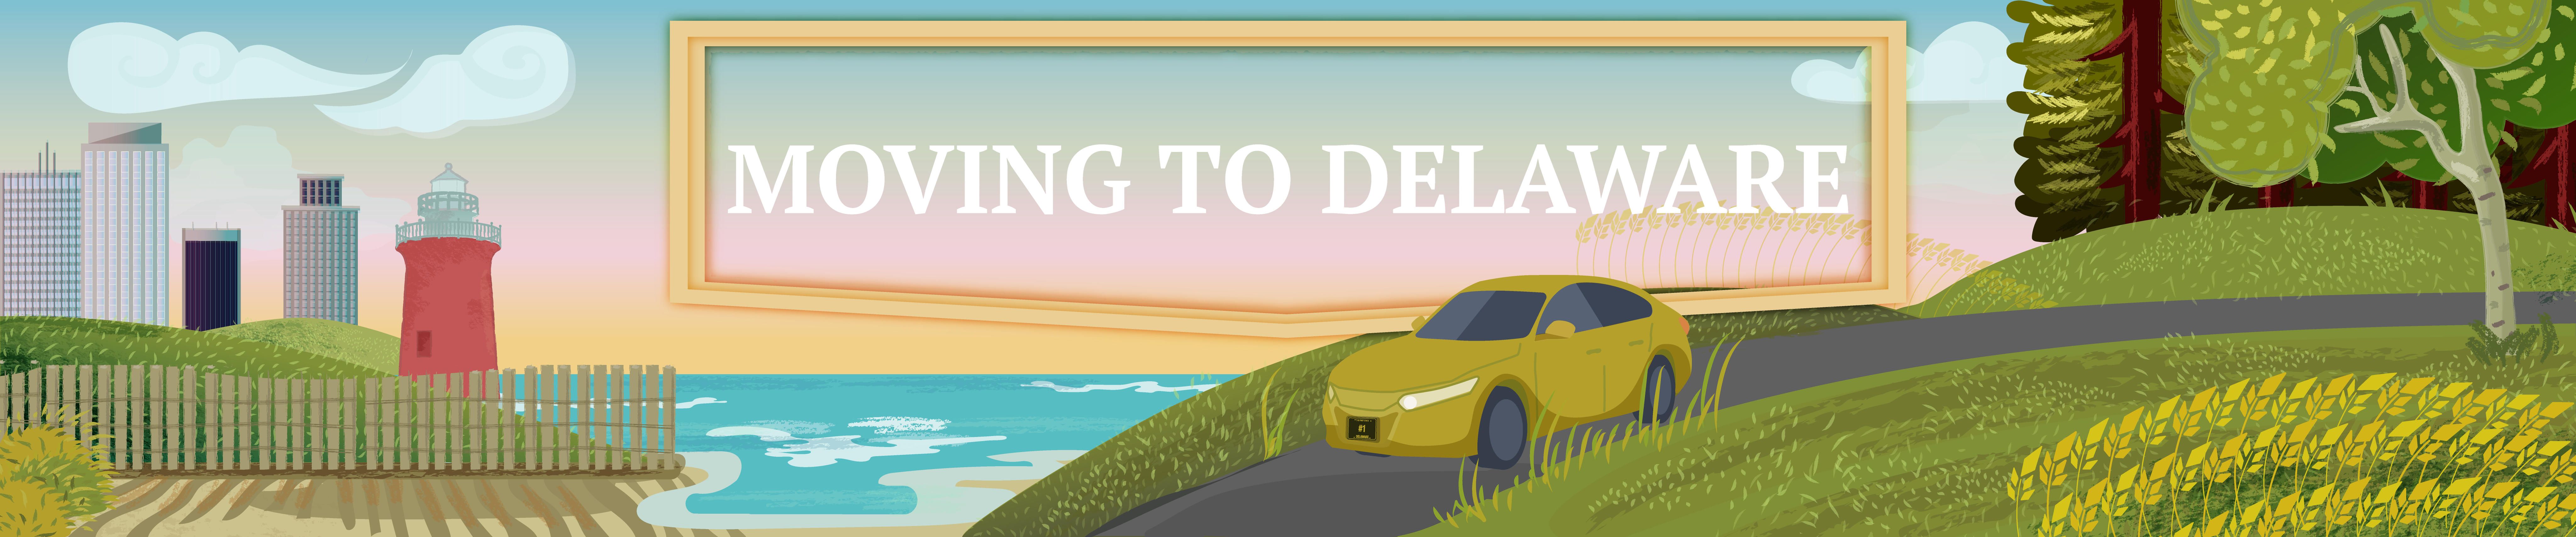 Graphic of a car moving to Delaware.